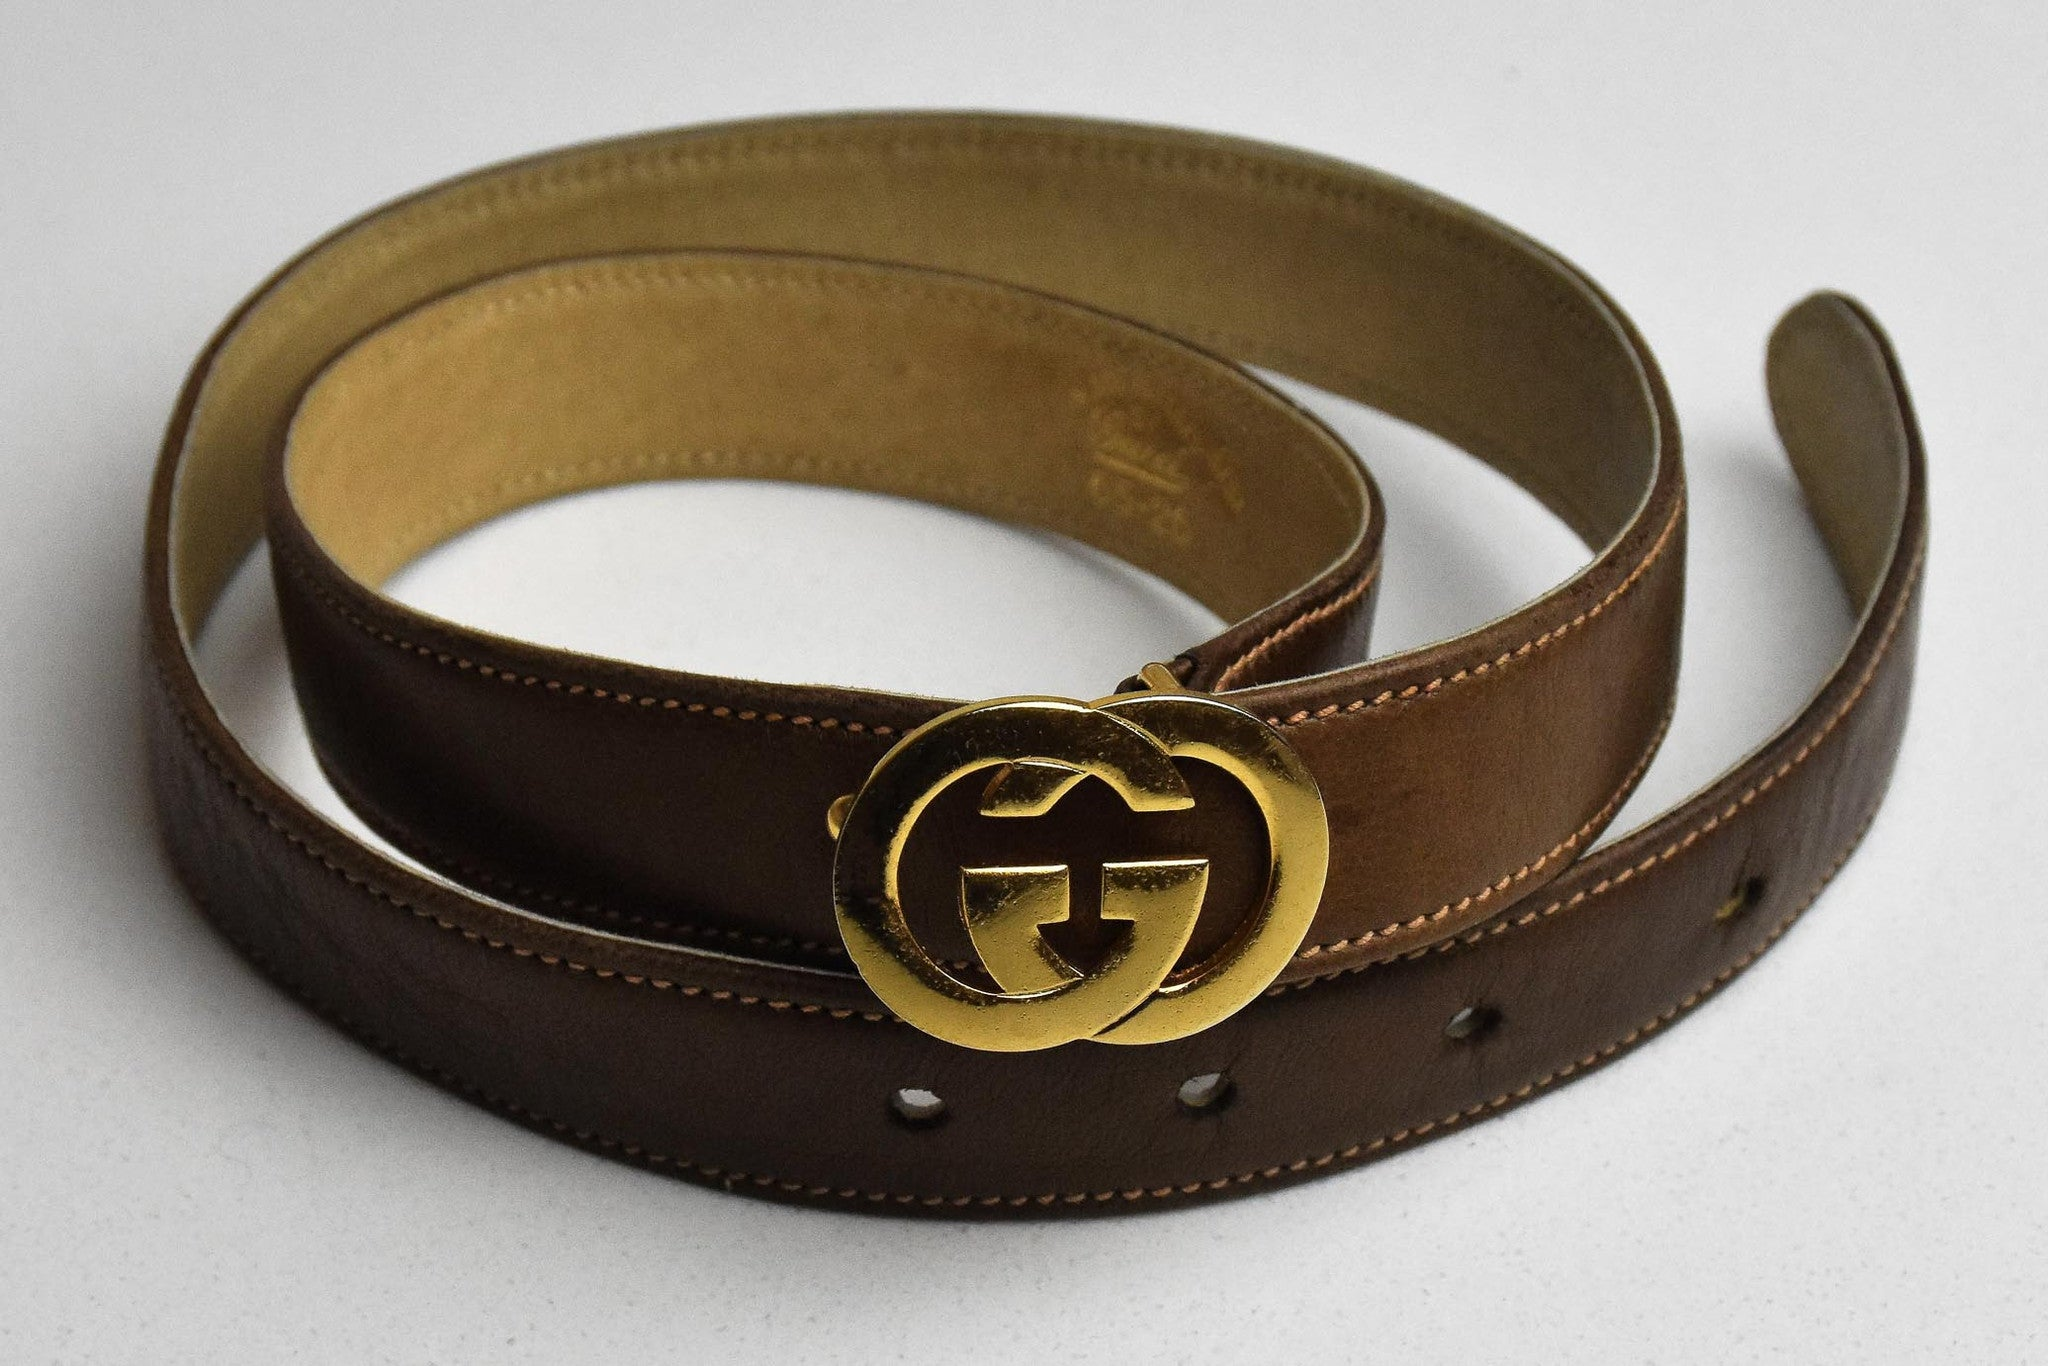 1970s Gucci leather belt